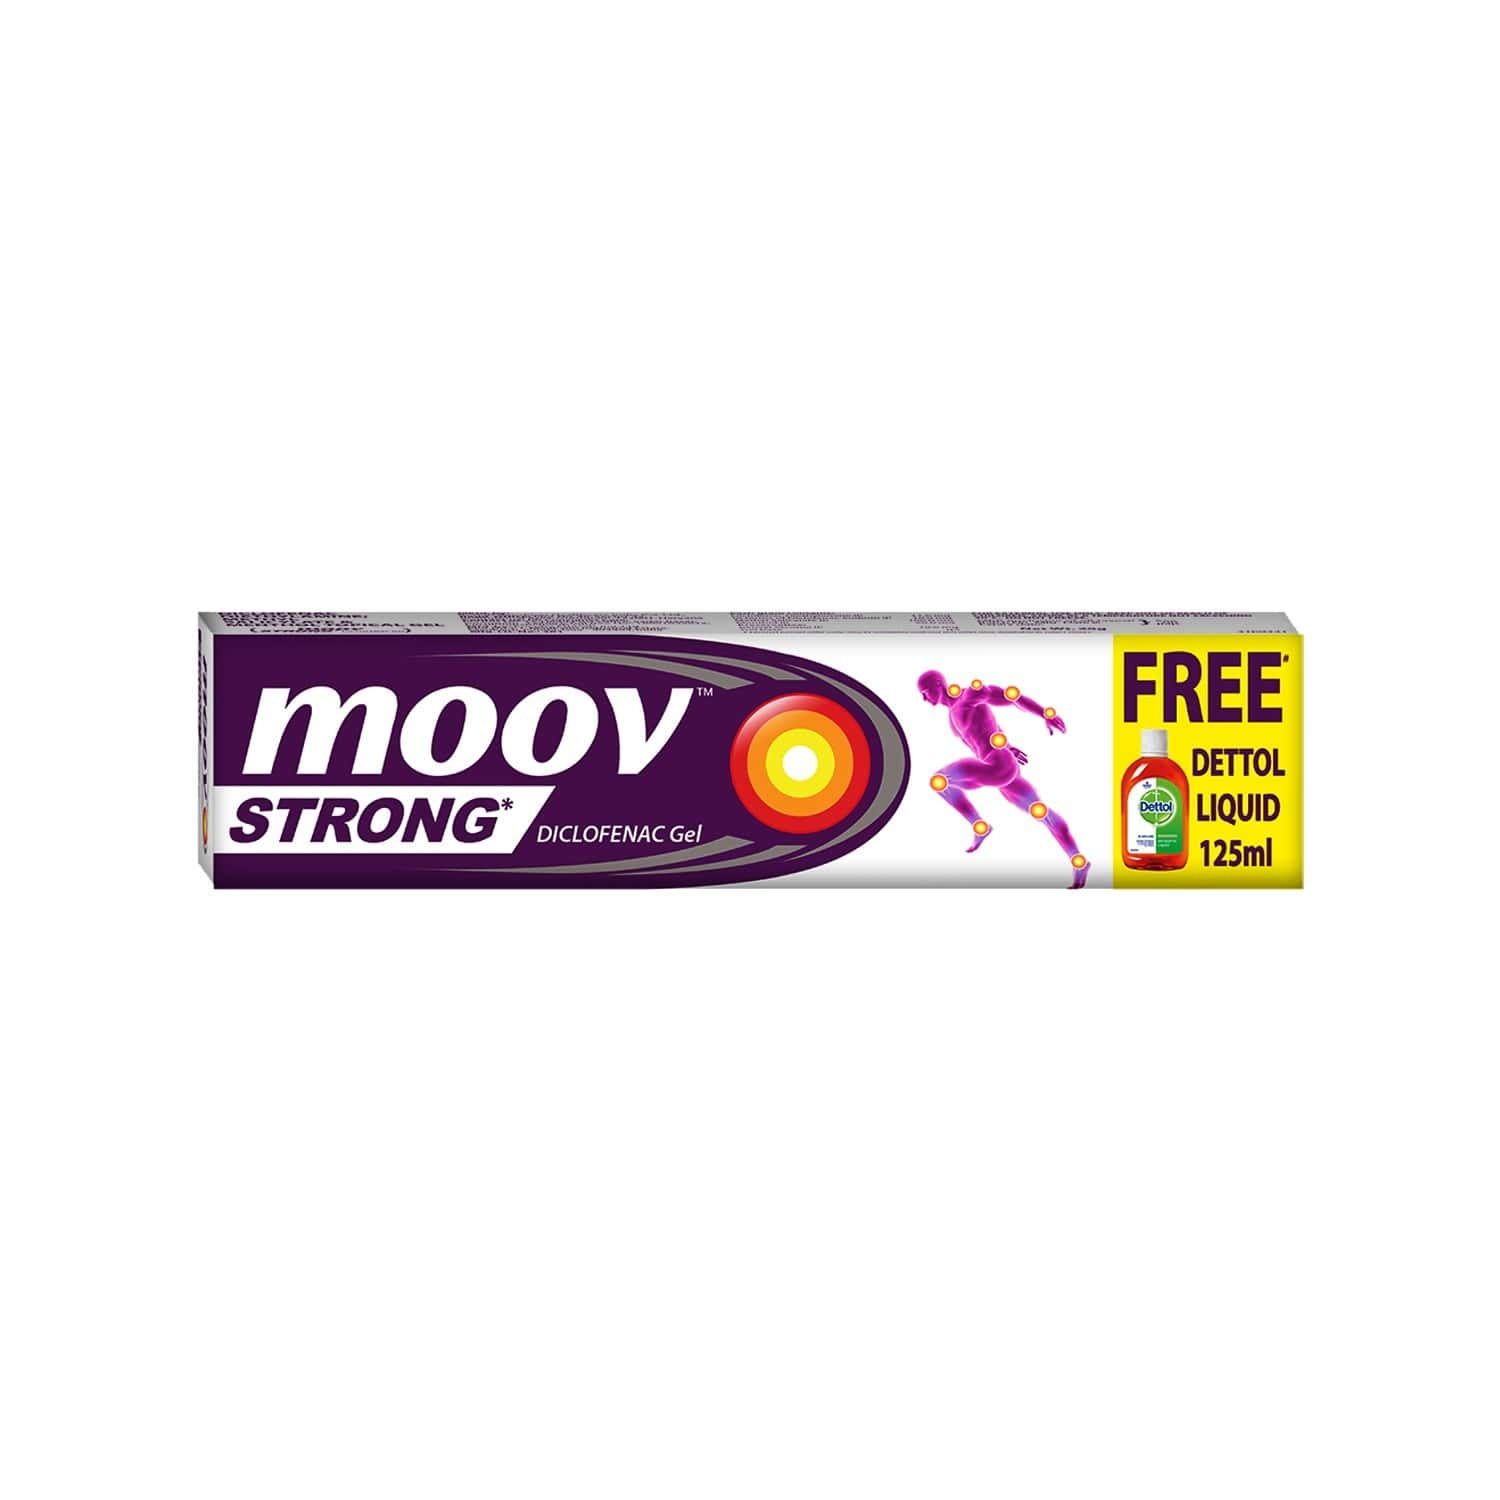 Moov Strong Diclofenac Pain Relief Gel 50g With Free Dettol Antiseptic Liquid - 125ml